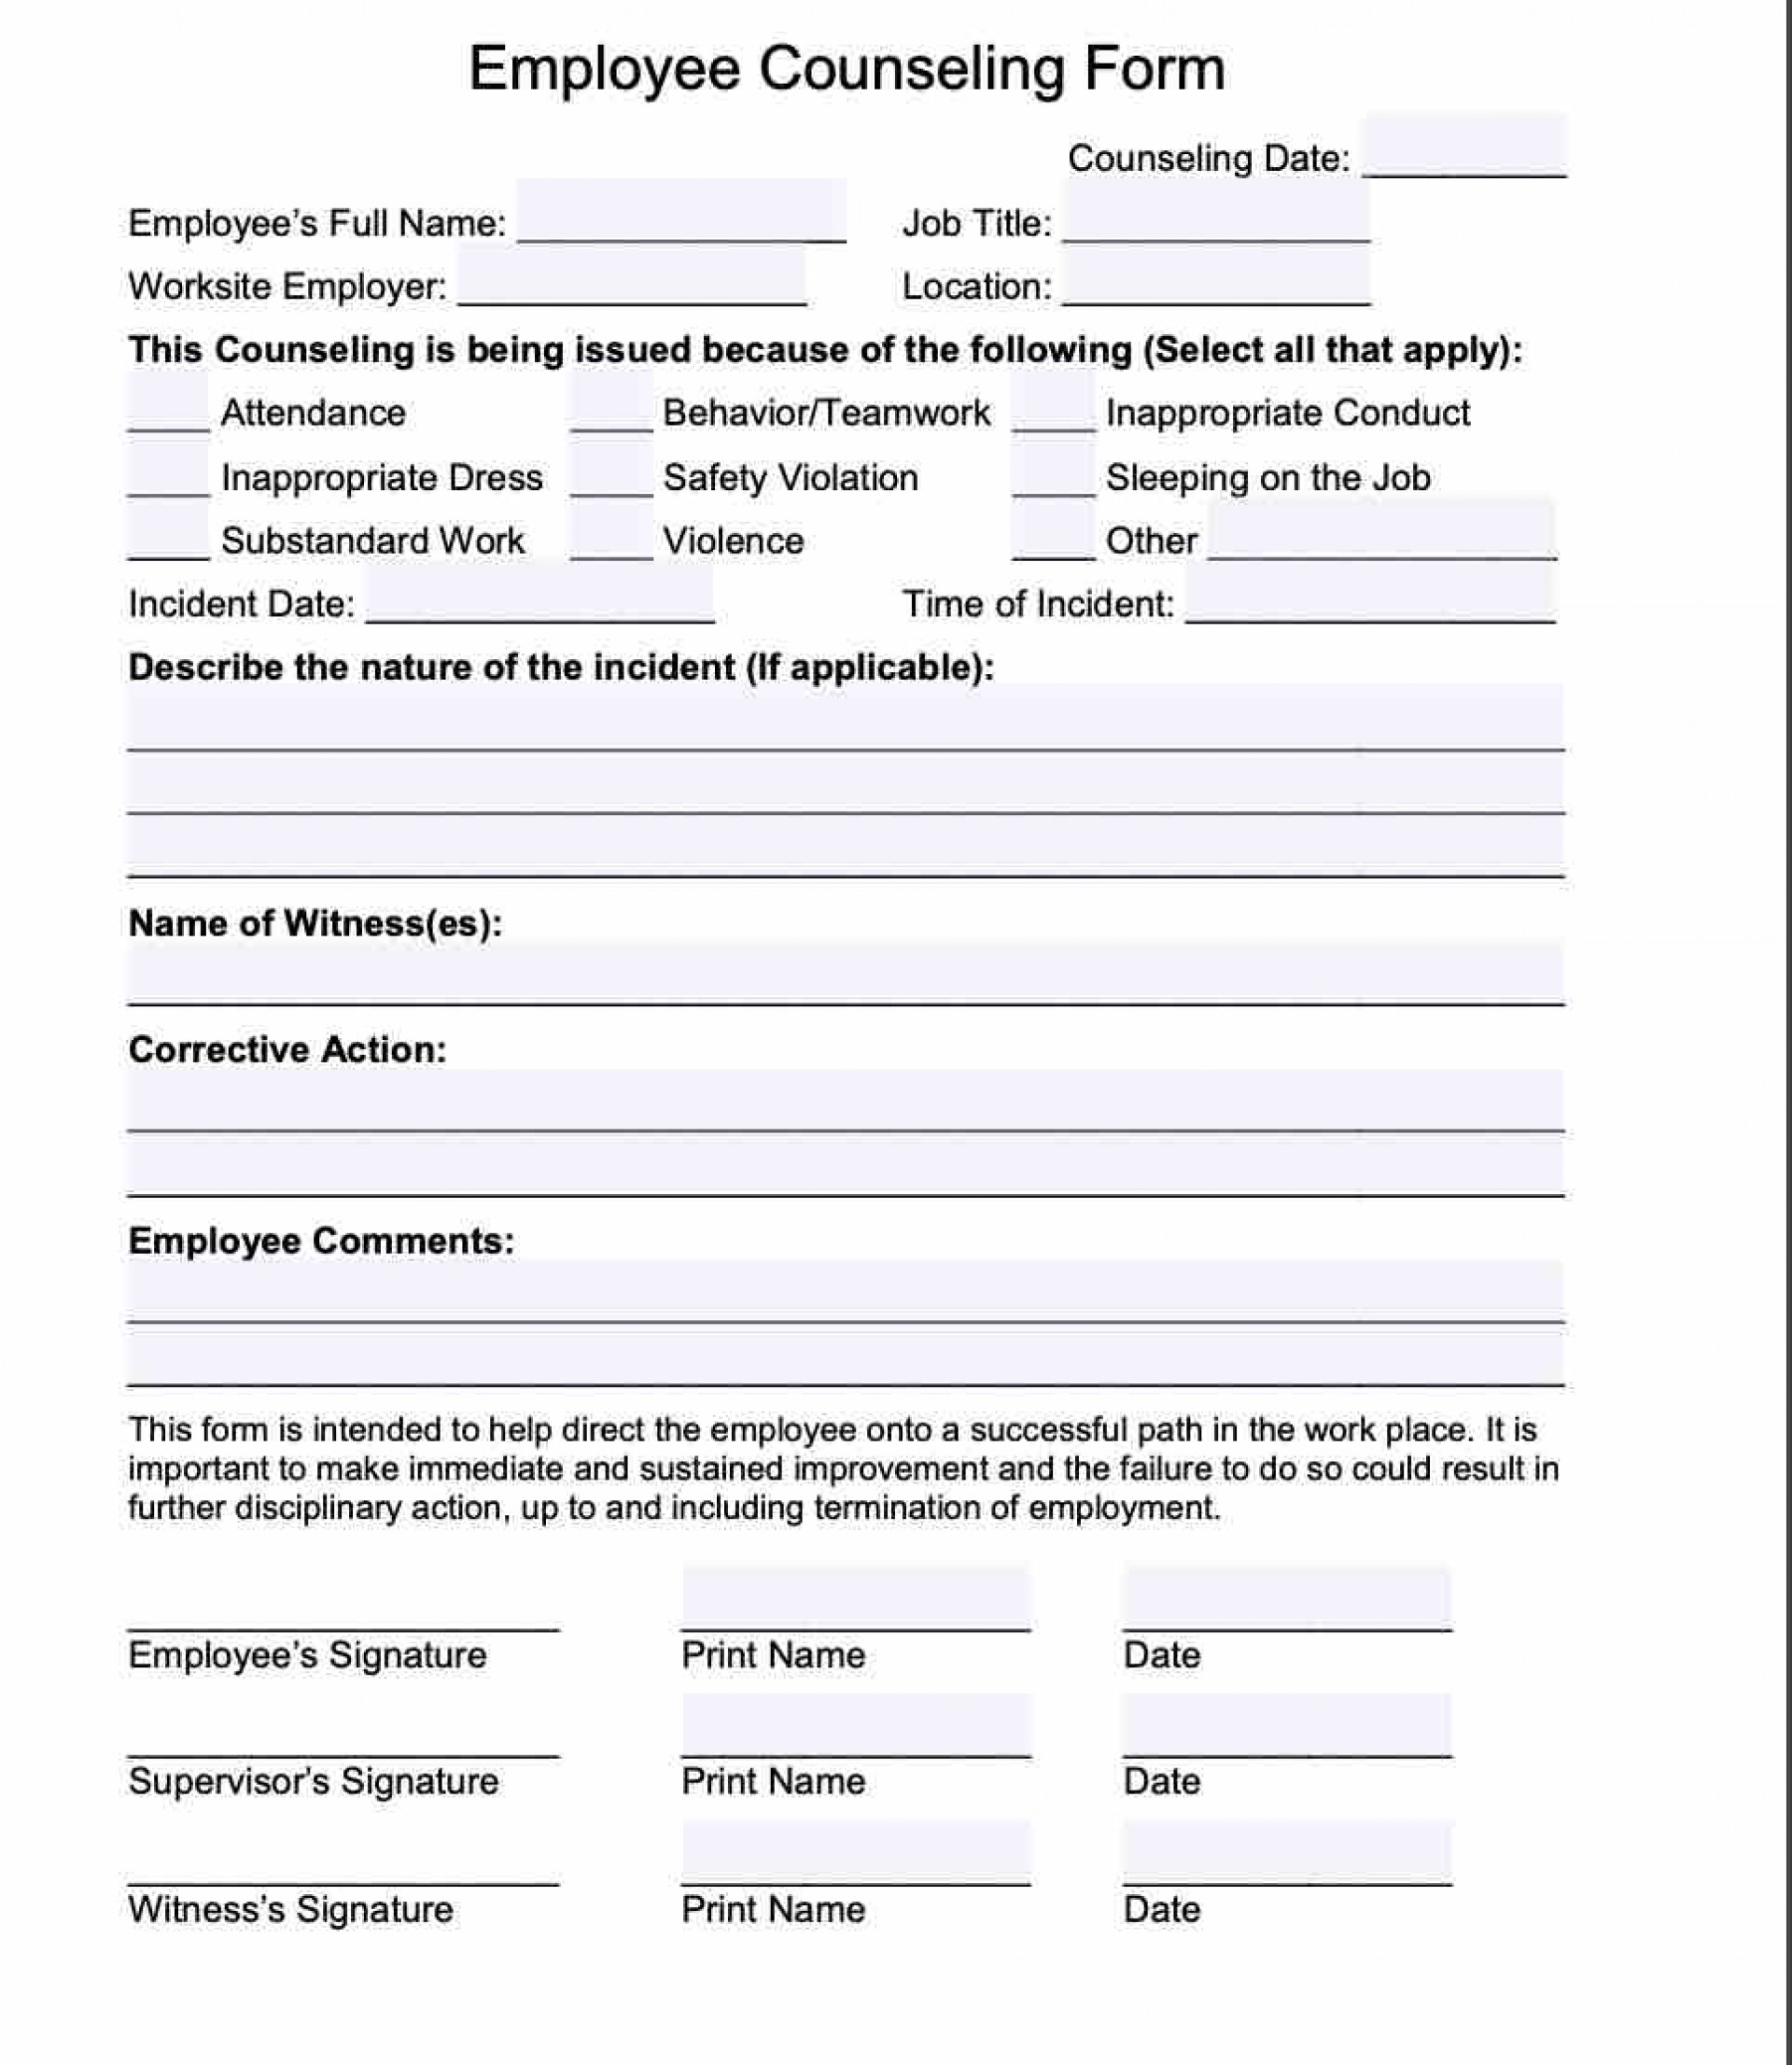 Free Employee Counseling Form Template